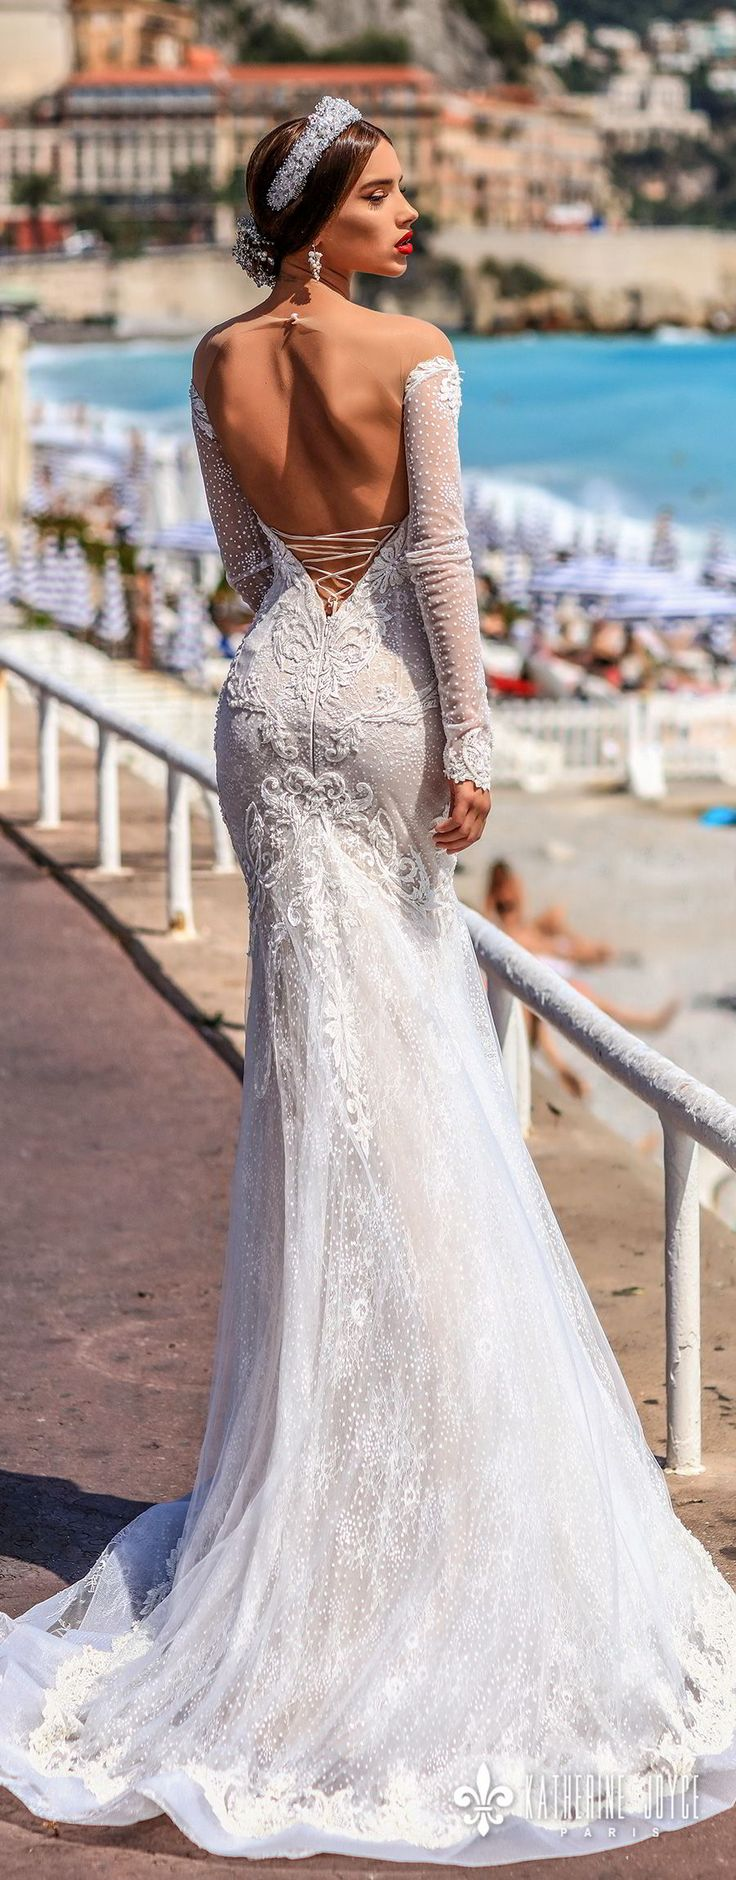 375 best Backless Gowns images on Pinterest | Wedding frocks ...